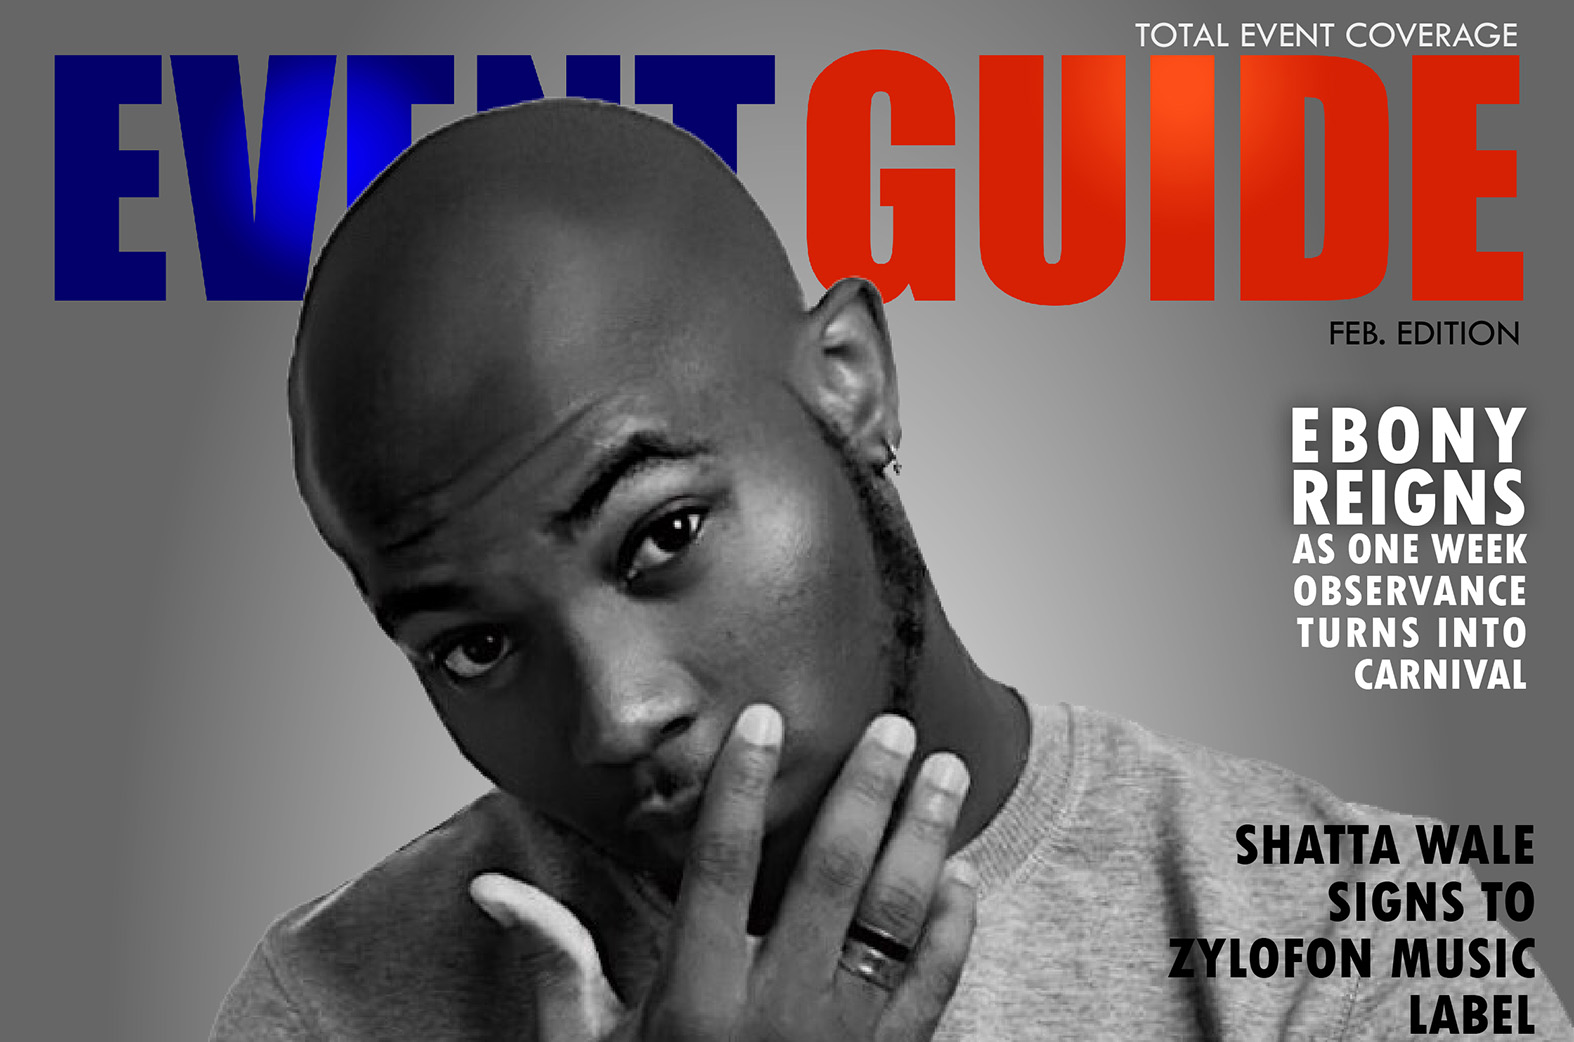 King Promise covers EVENTGUIDE February Edition | Ghana